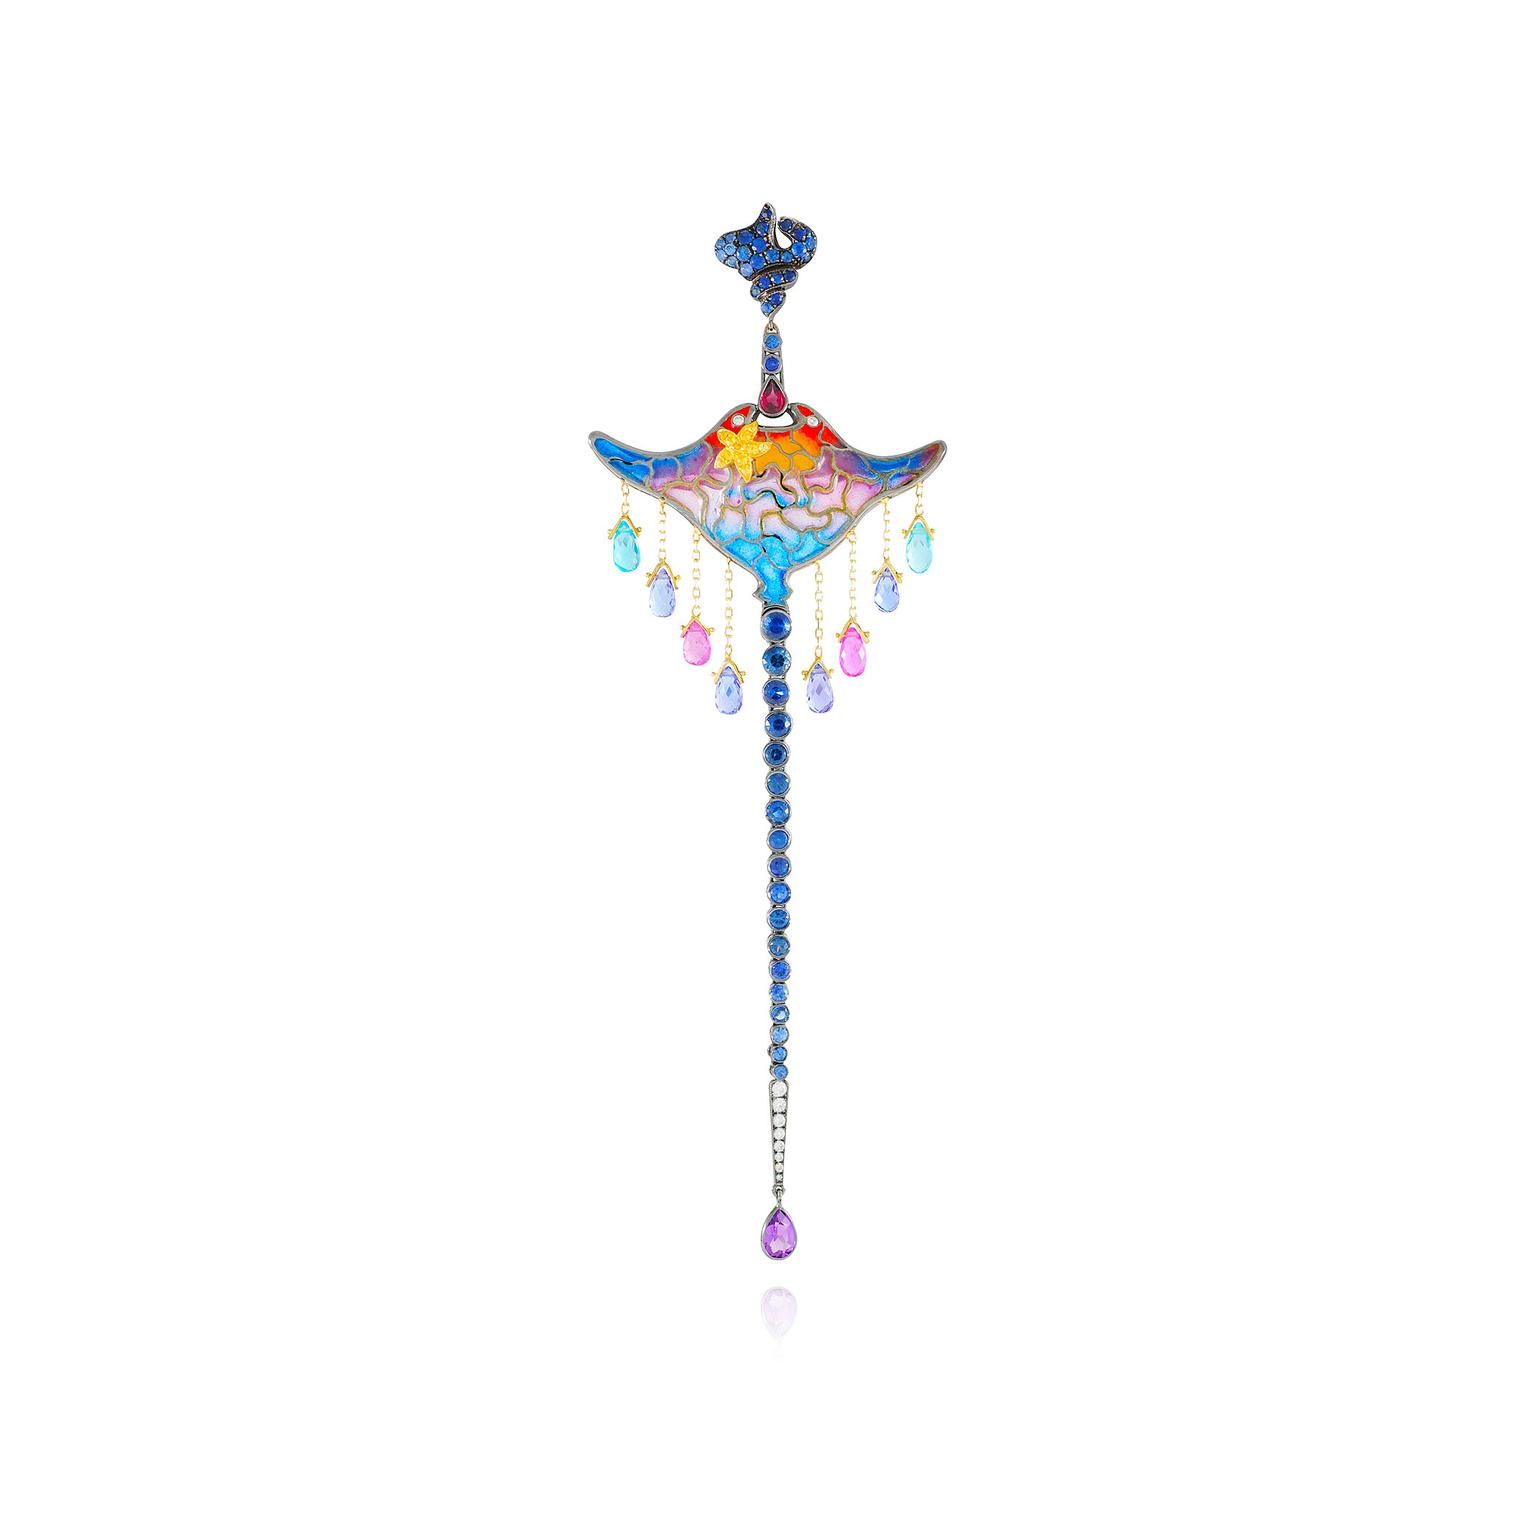 Lydia Courteille Kite Collection single earring in yellow gold with coloured gemstones and enamel